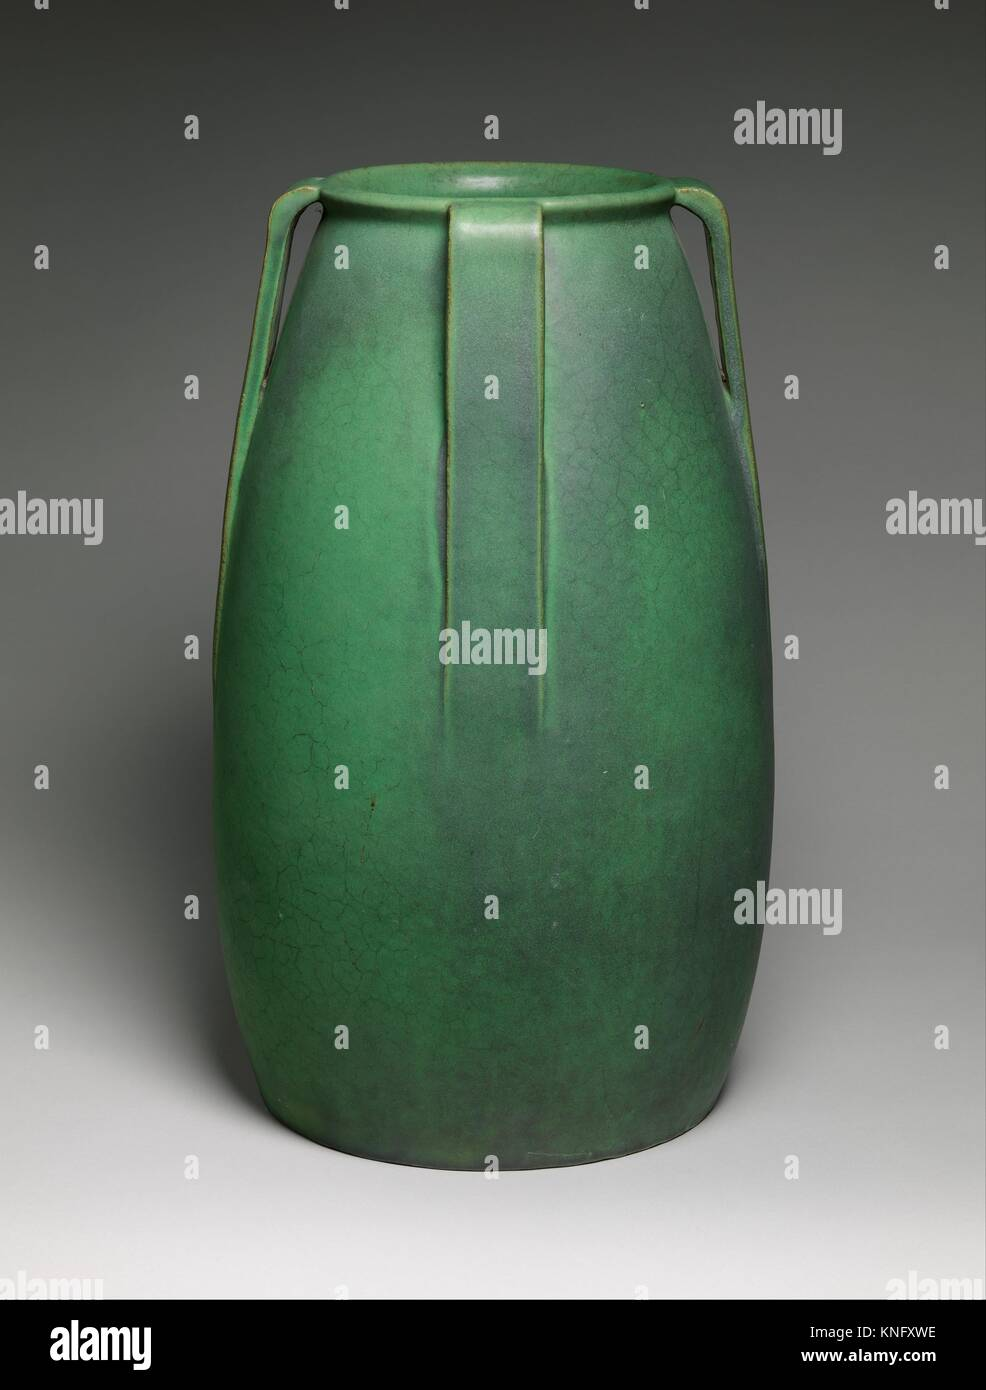 Vase. Designer: Designed by William Day Gates (1852-1935); Manufacturer: Manufactured by Gates Potteries (Teco Pottery) - Stock Image